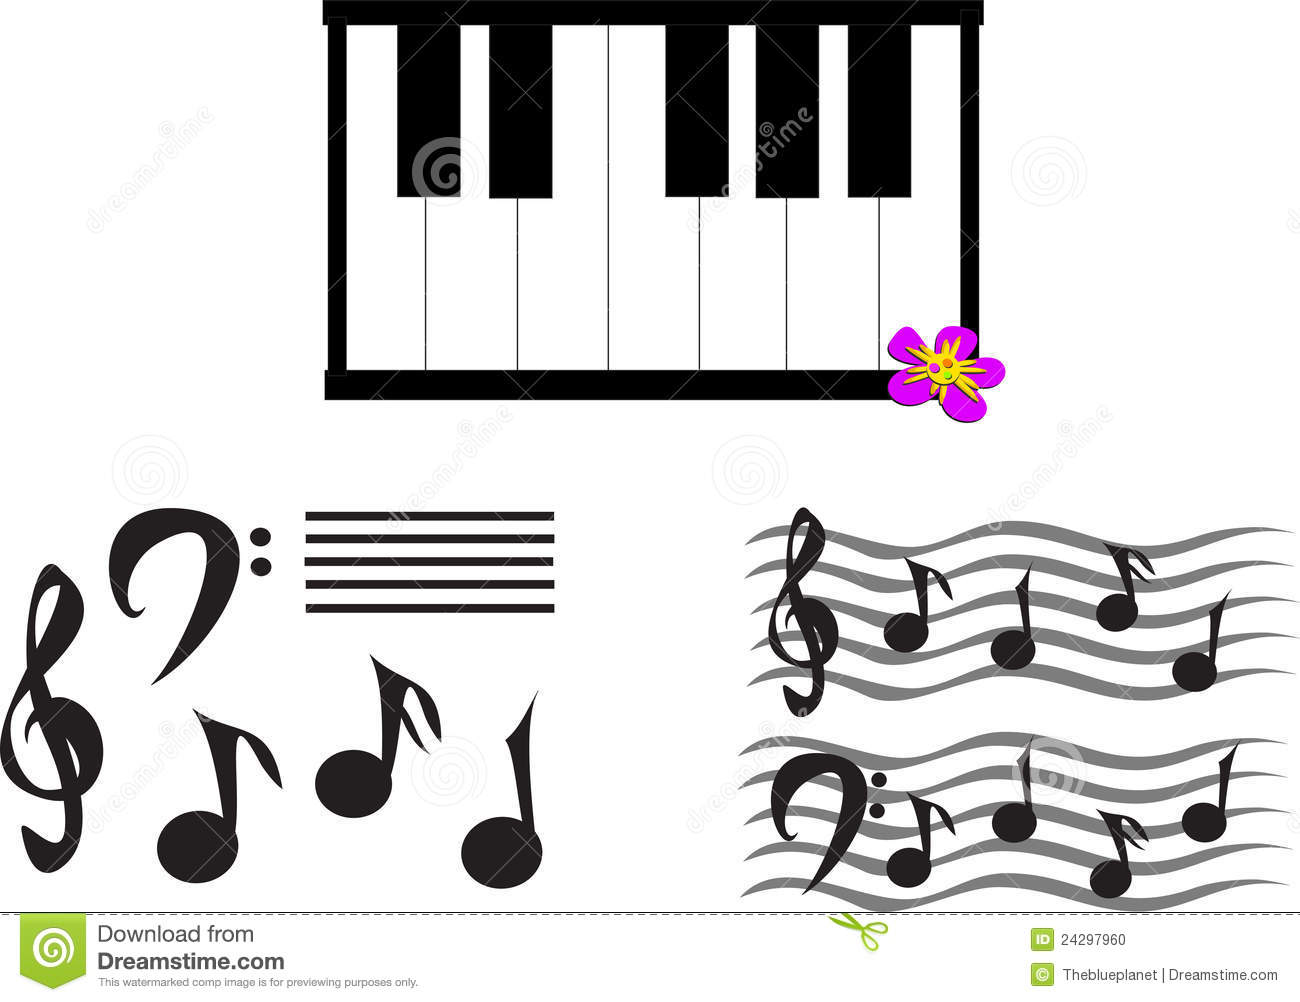 Mix Of Musical Notes, Symbols, And Keyboard Stock Vector